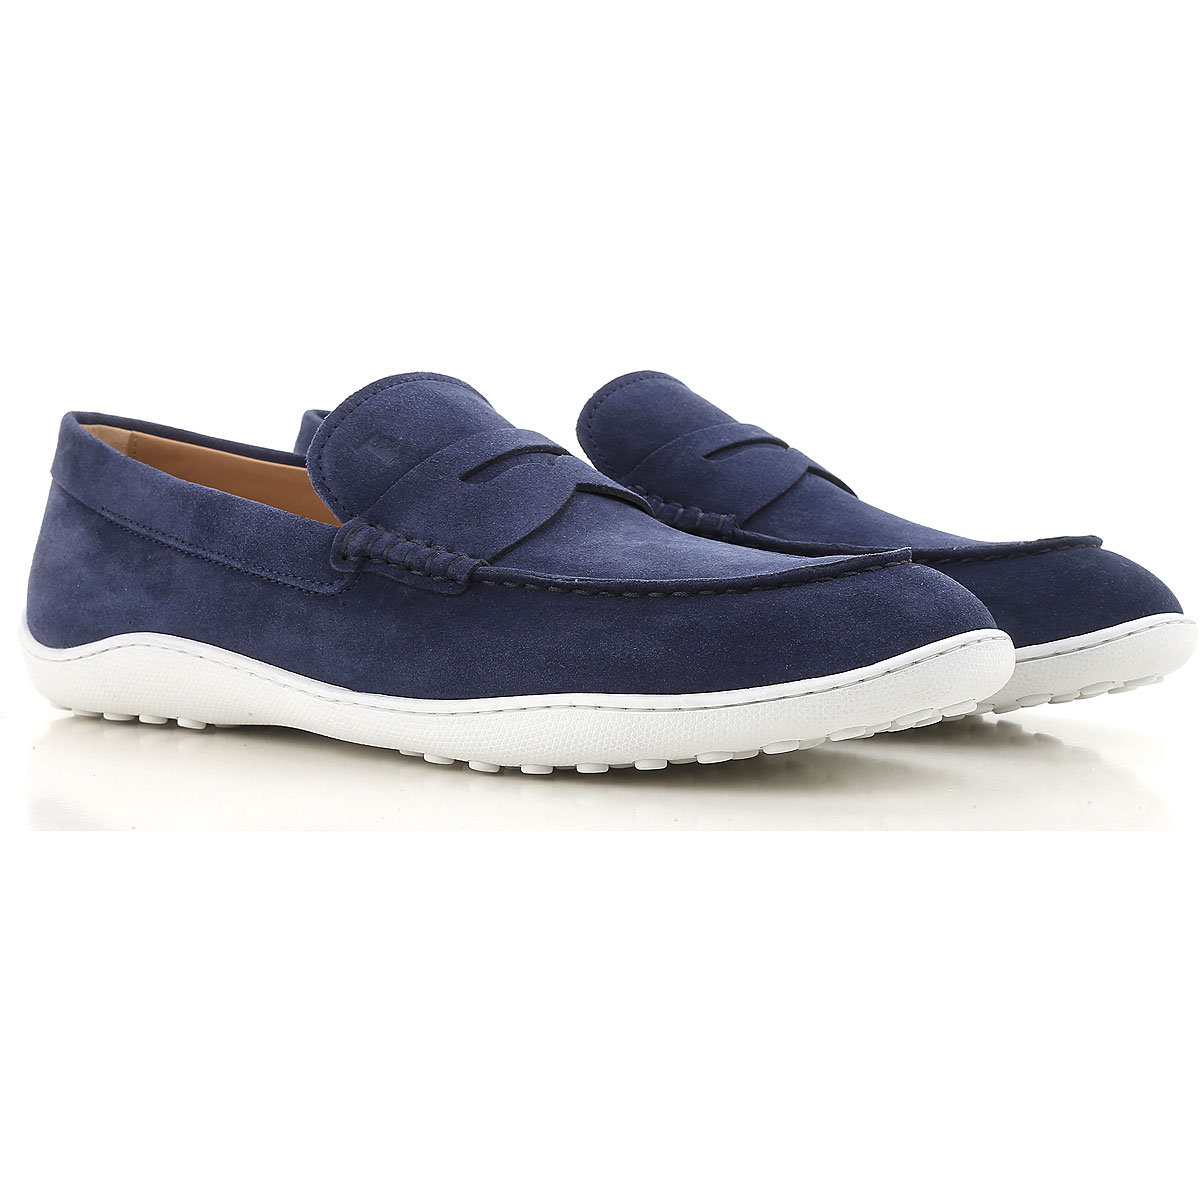 Image of Tods Driver Loafer Shoes for Men, Dark Blue, Suede leather, 2017, 11 7 7.5 8 9